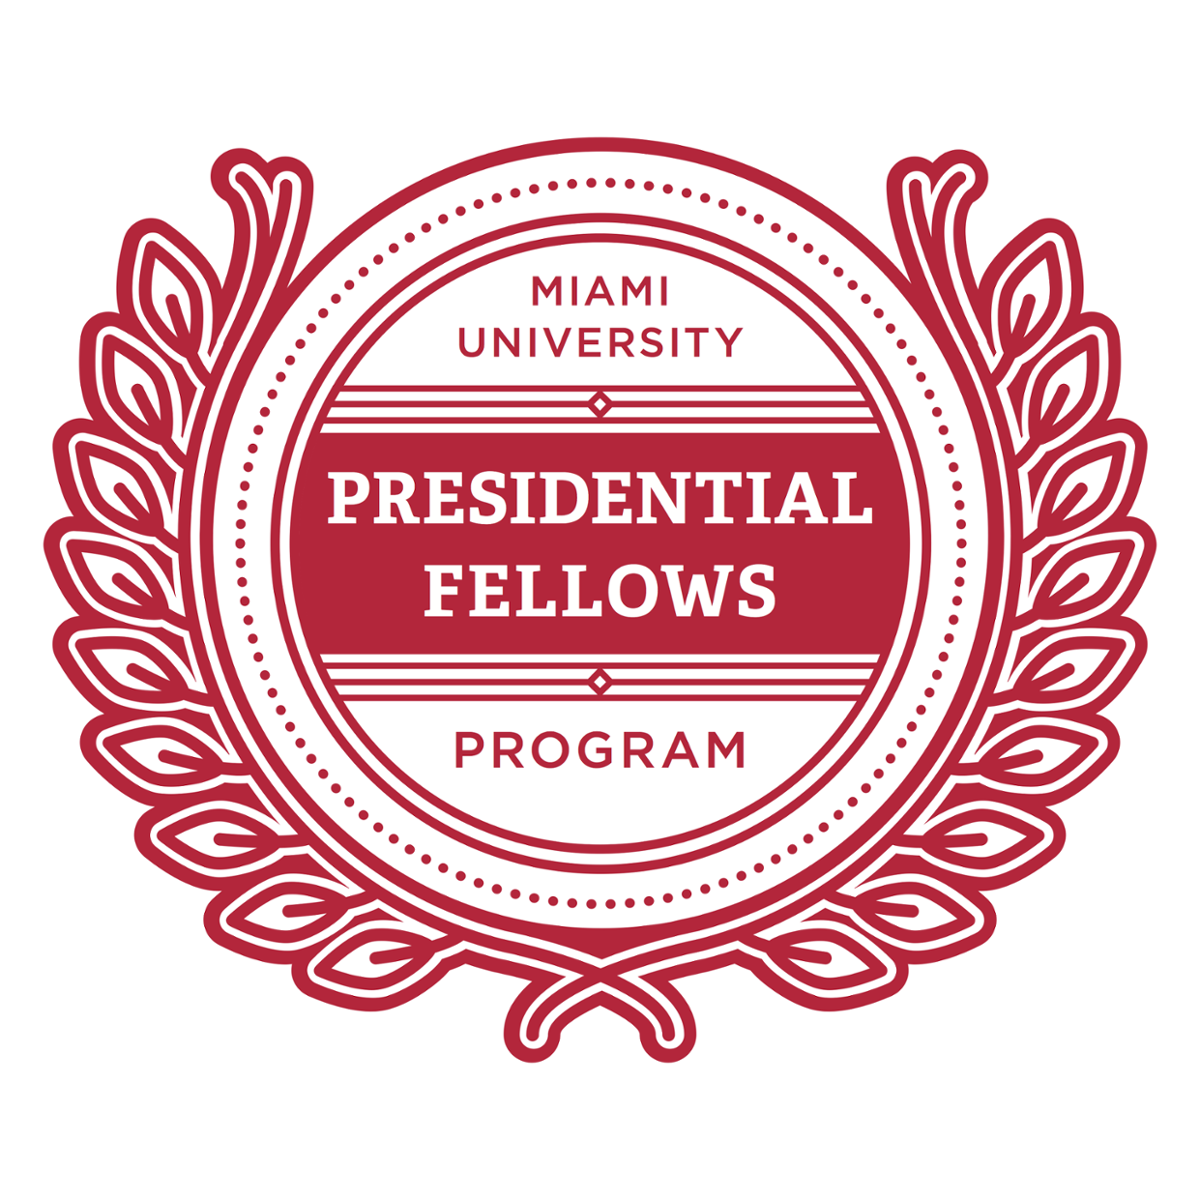 Presidential Fellows